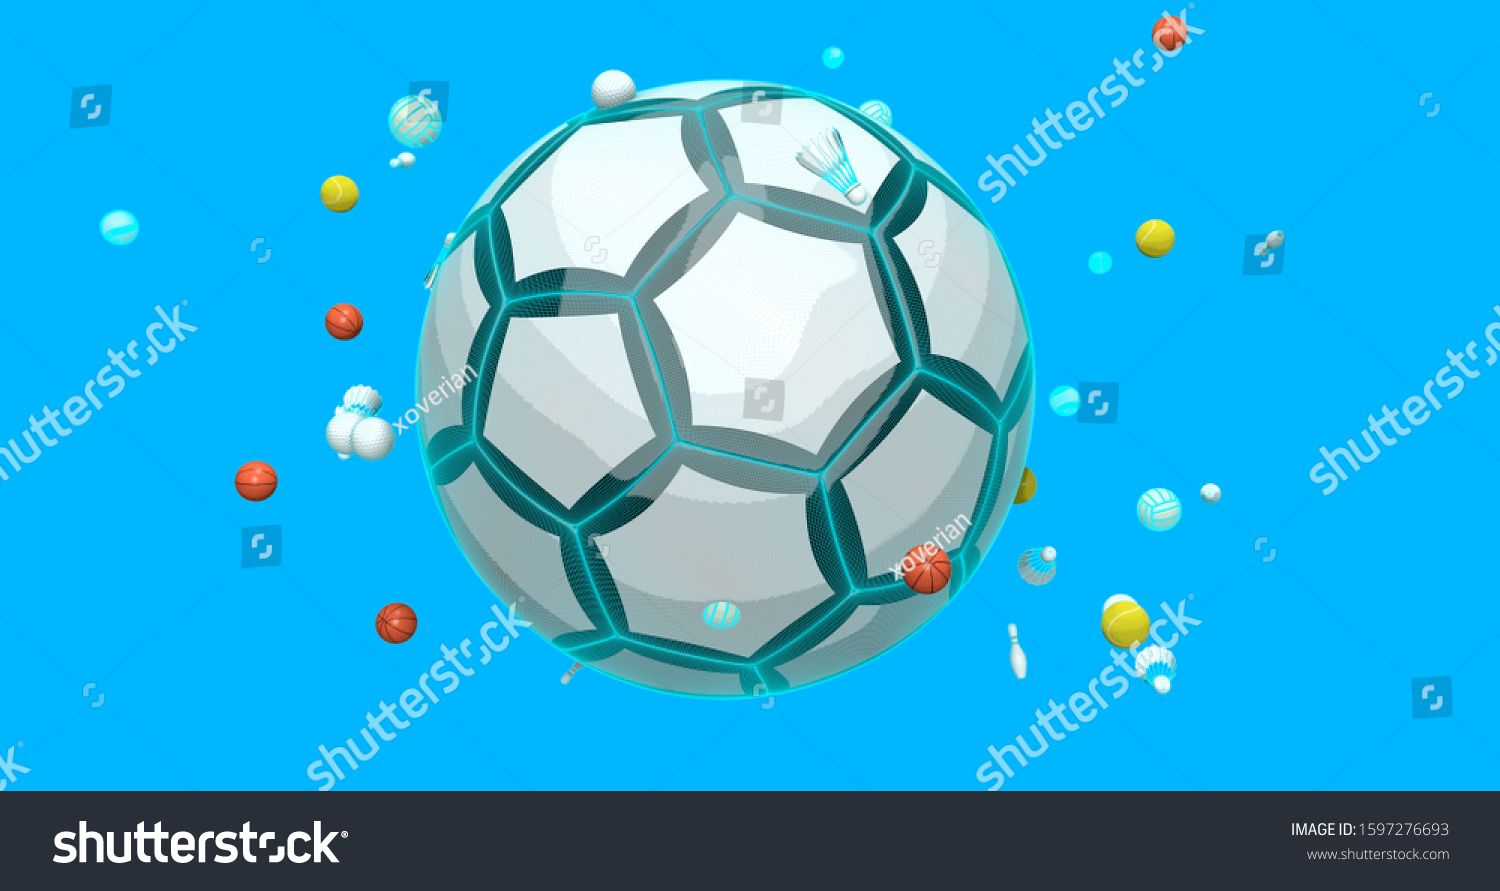 Sports Elements Soccer Ball Shuttercock Tennis Royalty Free Image Illustration Soccer Ball Soccer Sports